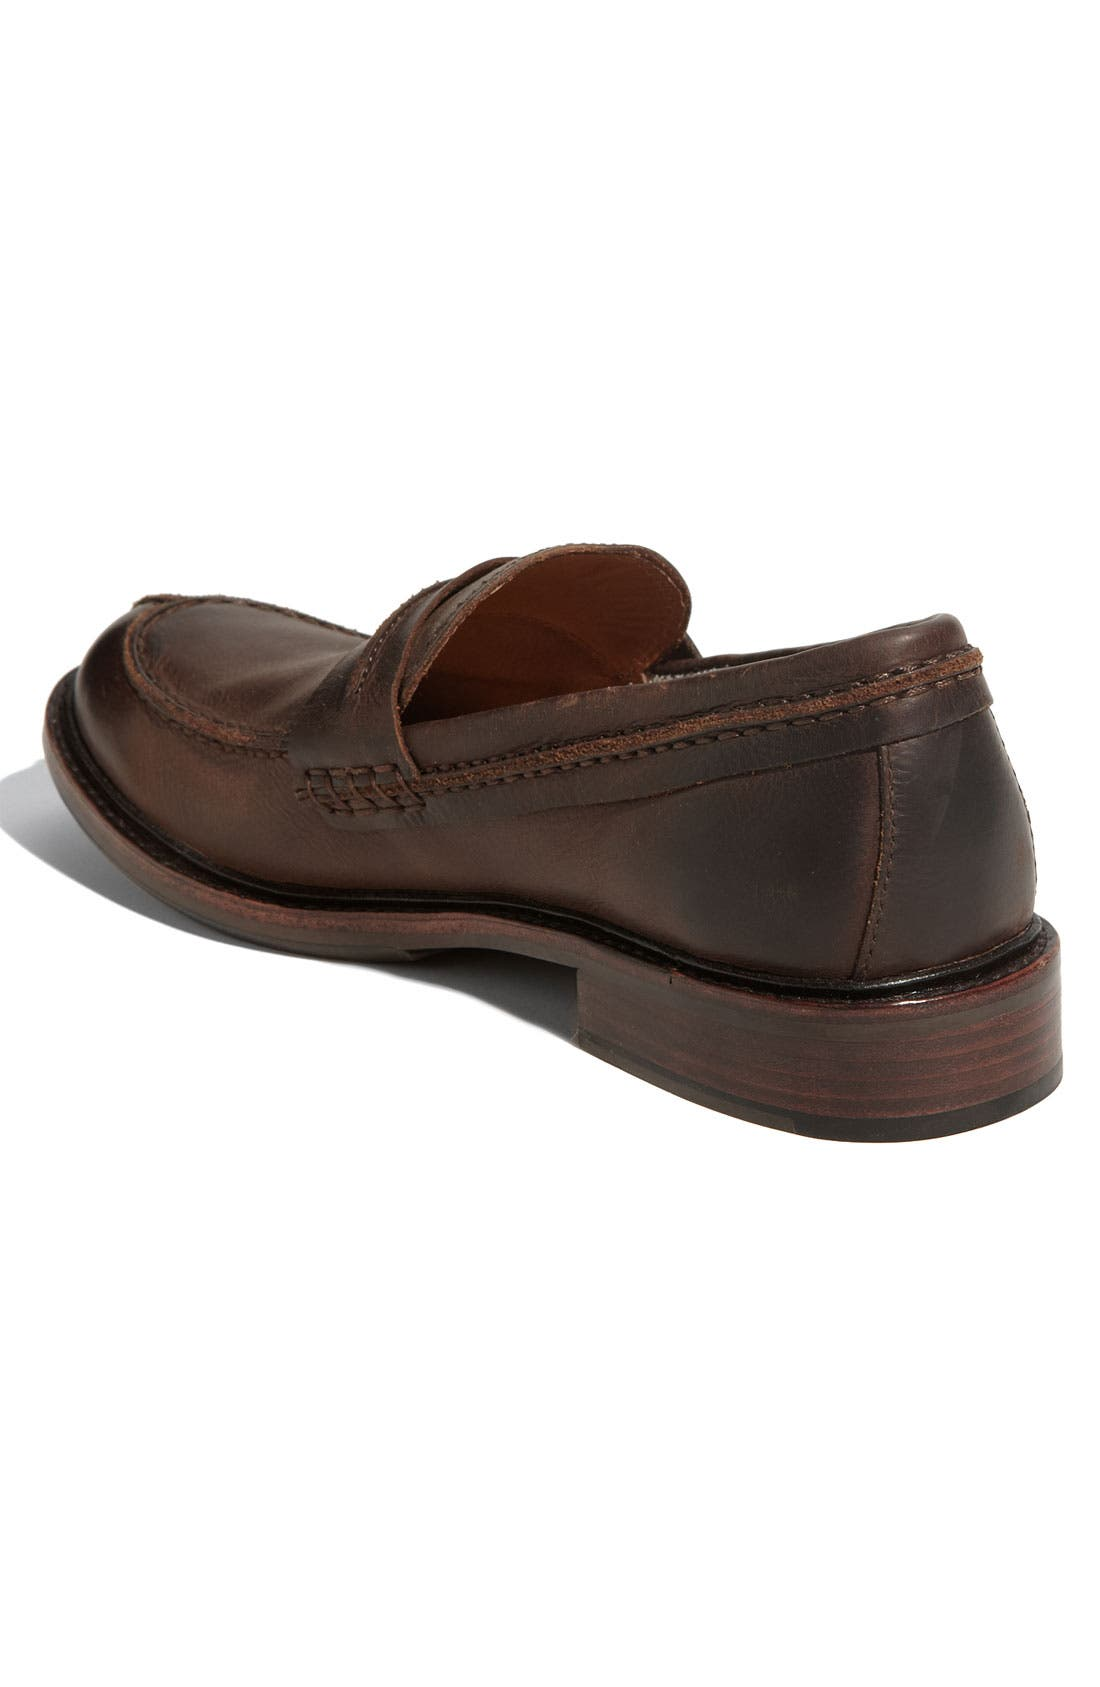 Alternate Image 3  - Fossil 'Jarred' Loafer